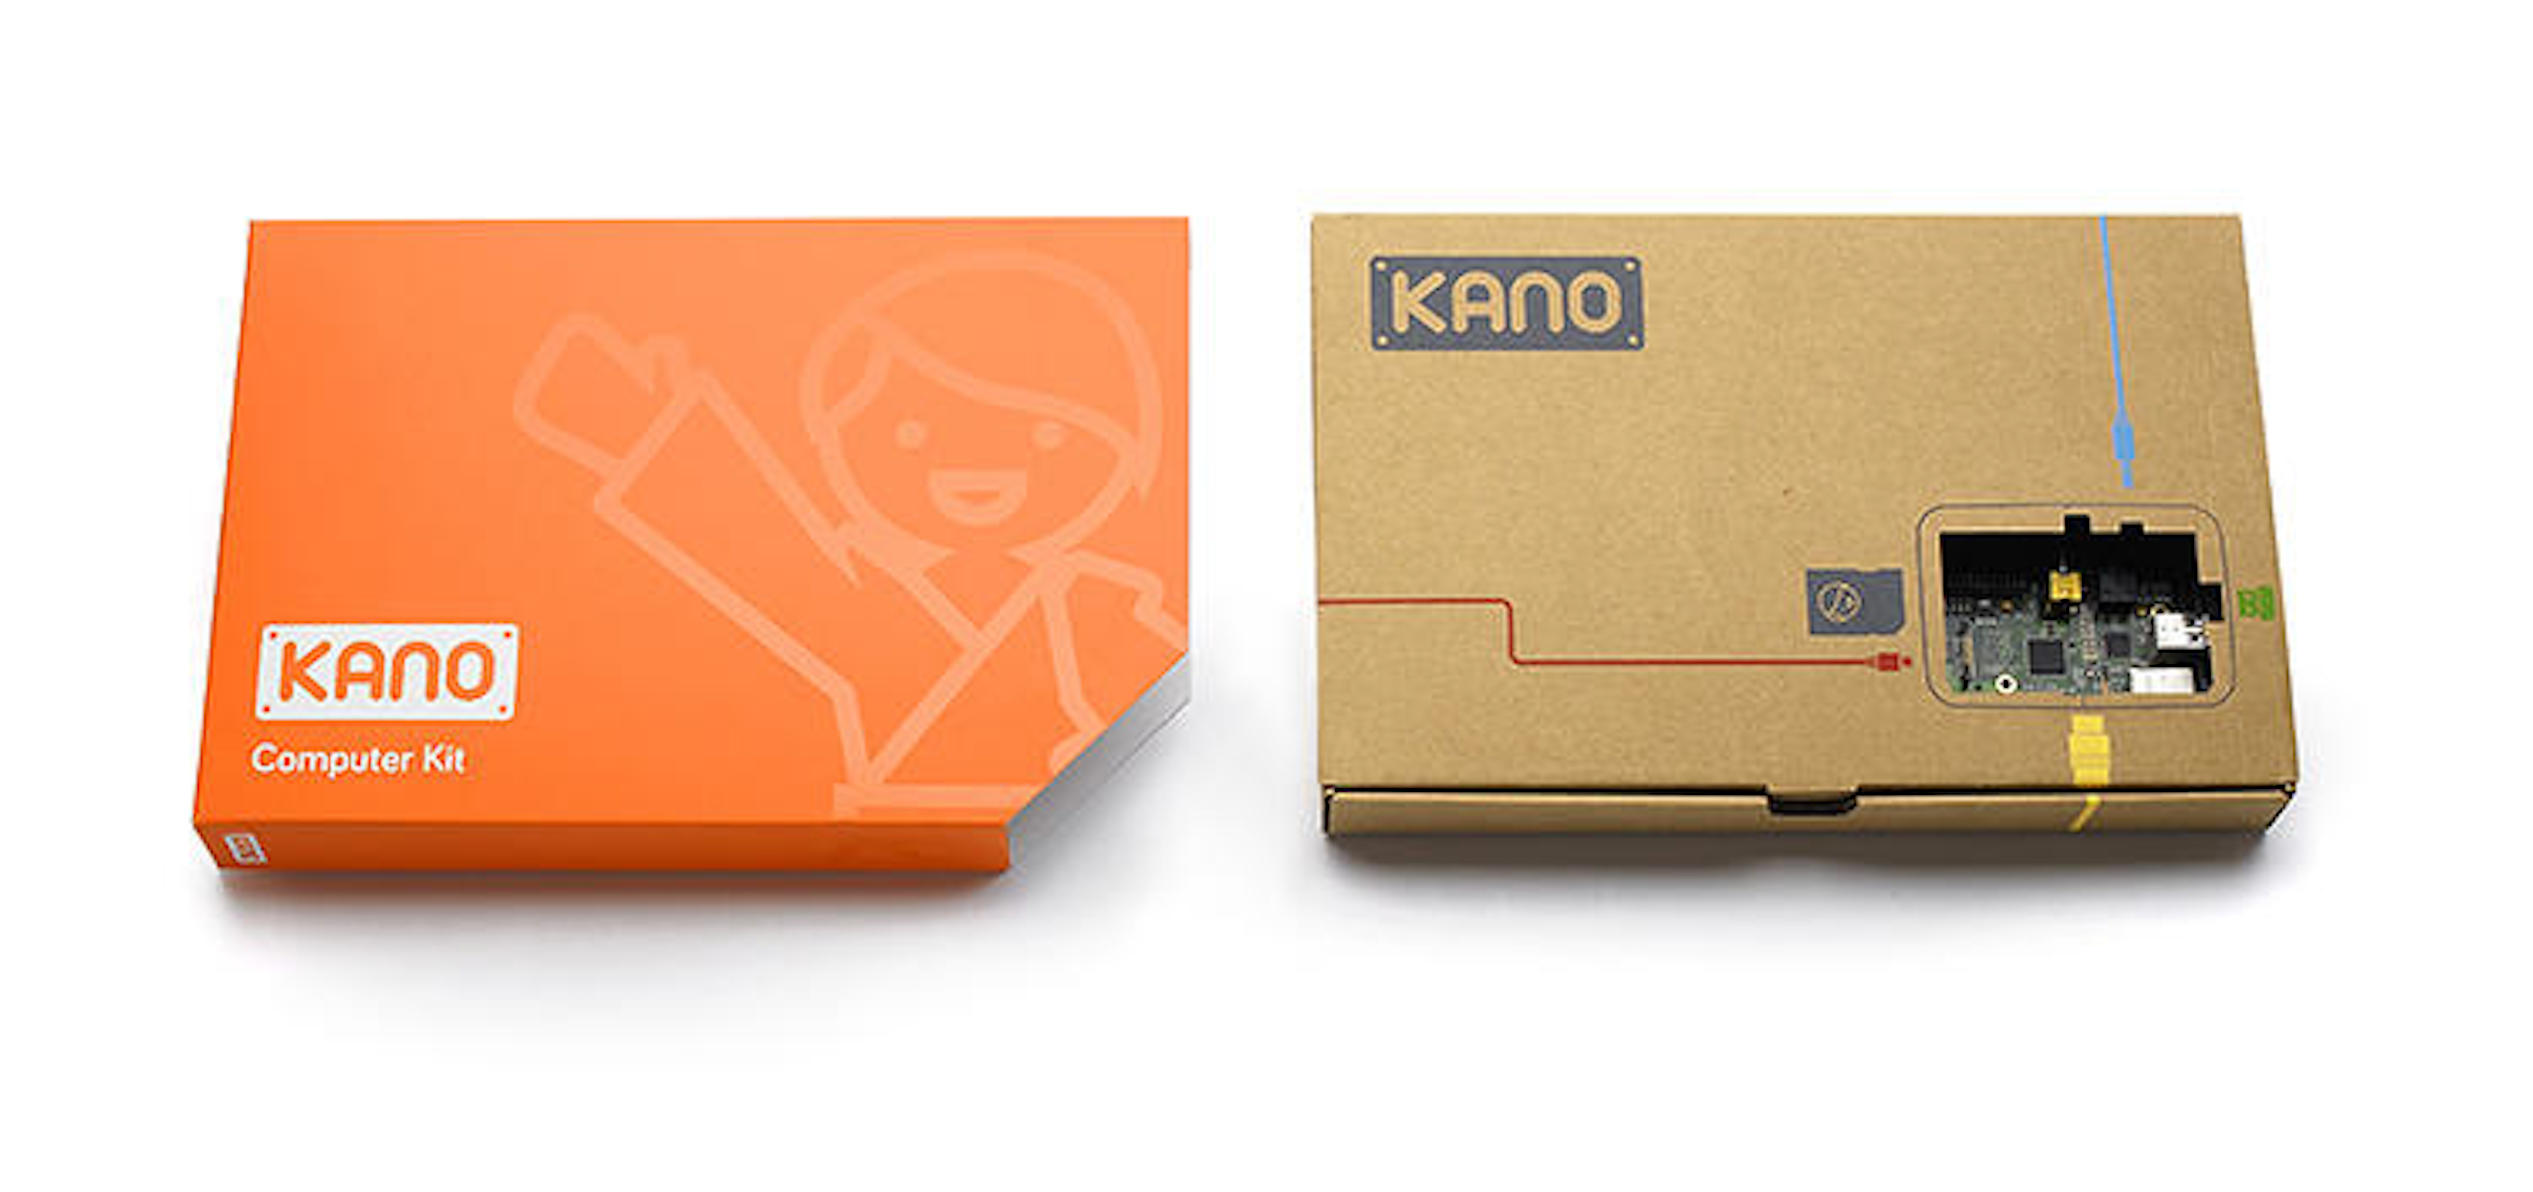 3021909-slide-01-kano-kit-out-of-the-sleeve